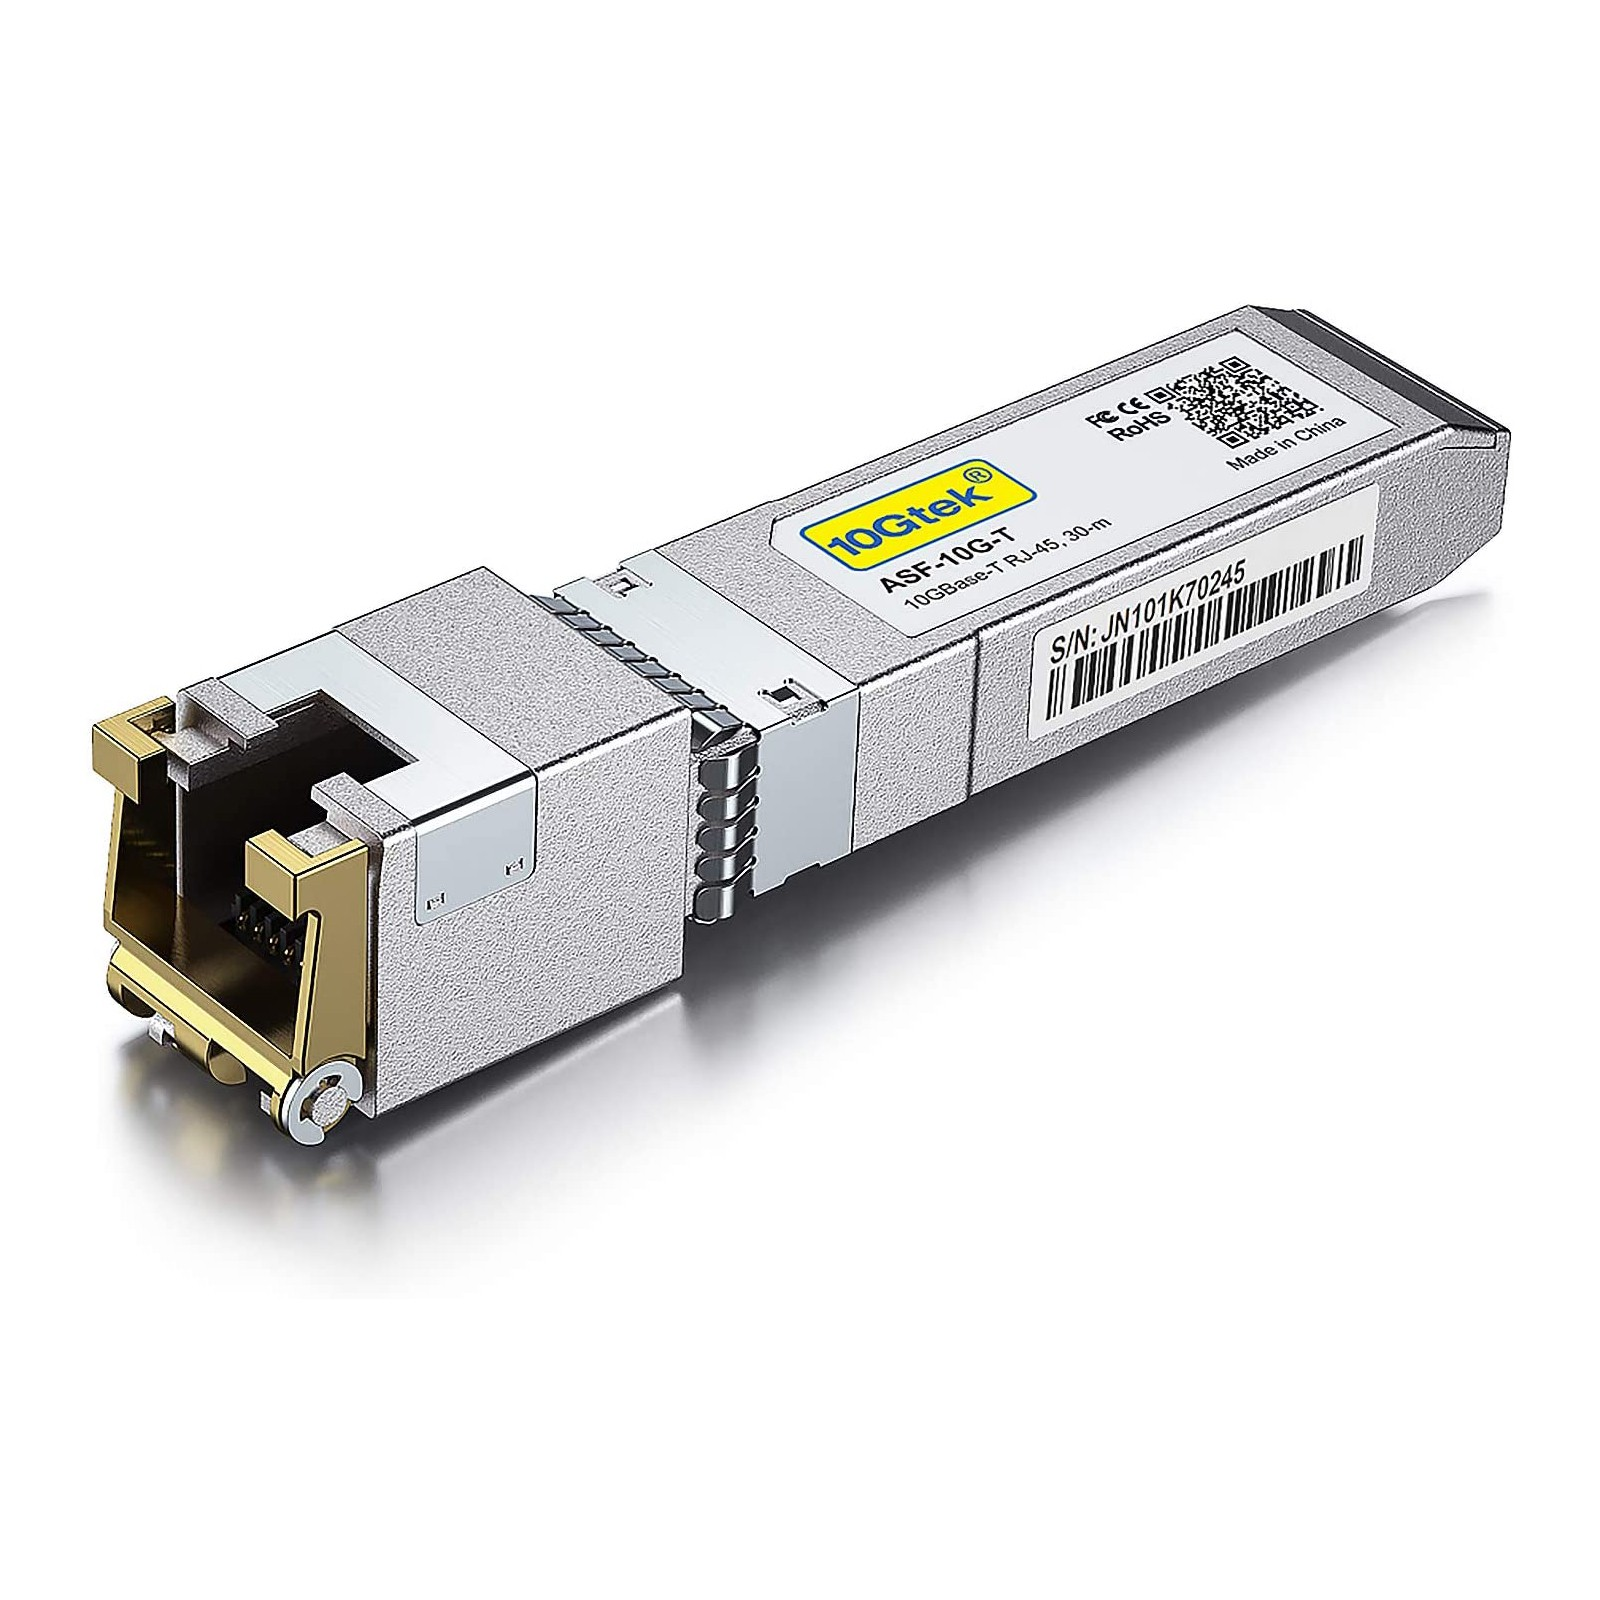 10GBase-T SFP+ Transceiver, 10G T, 10G Copper, RJ-45 SFP+ CAT.6a up to 30 meters Compatible for Supermicro *